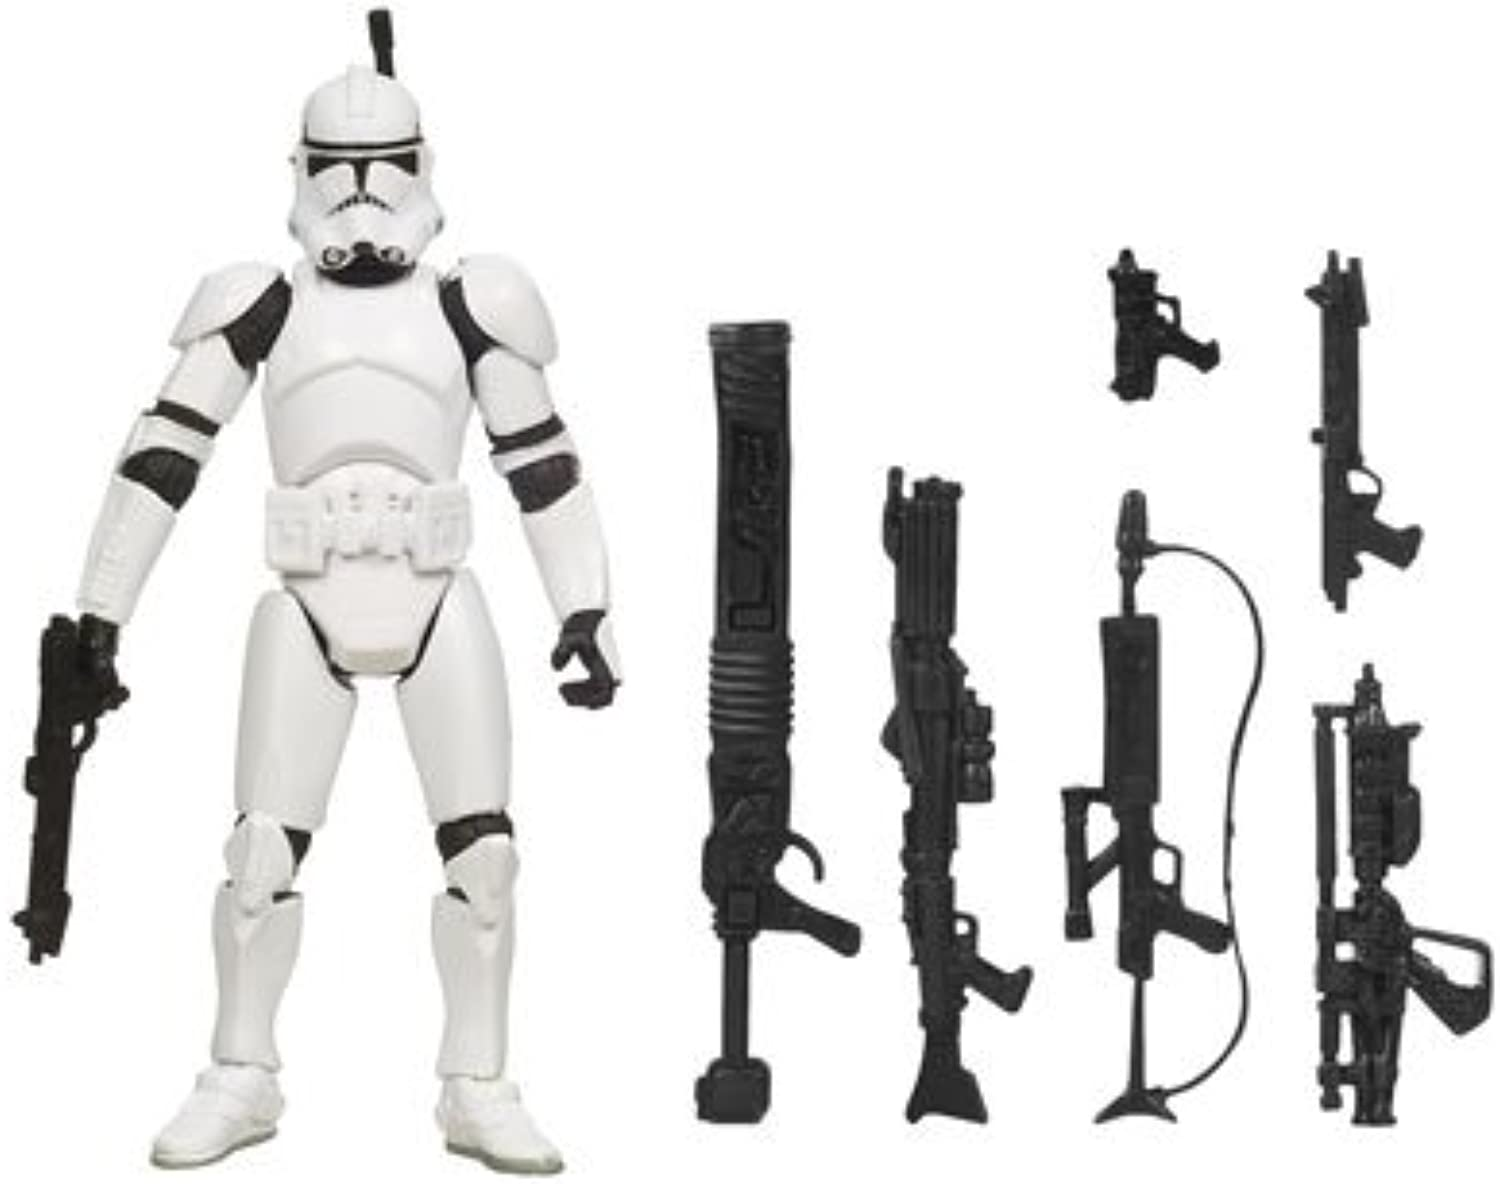 Star Wars Saga Legends Action Figure - Clone Troop by Hasbro B002PIYVN2 Neuheit Spielzeug   | Erlesene Materialien